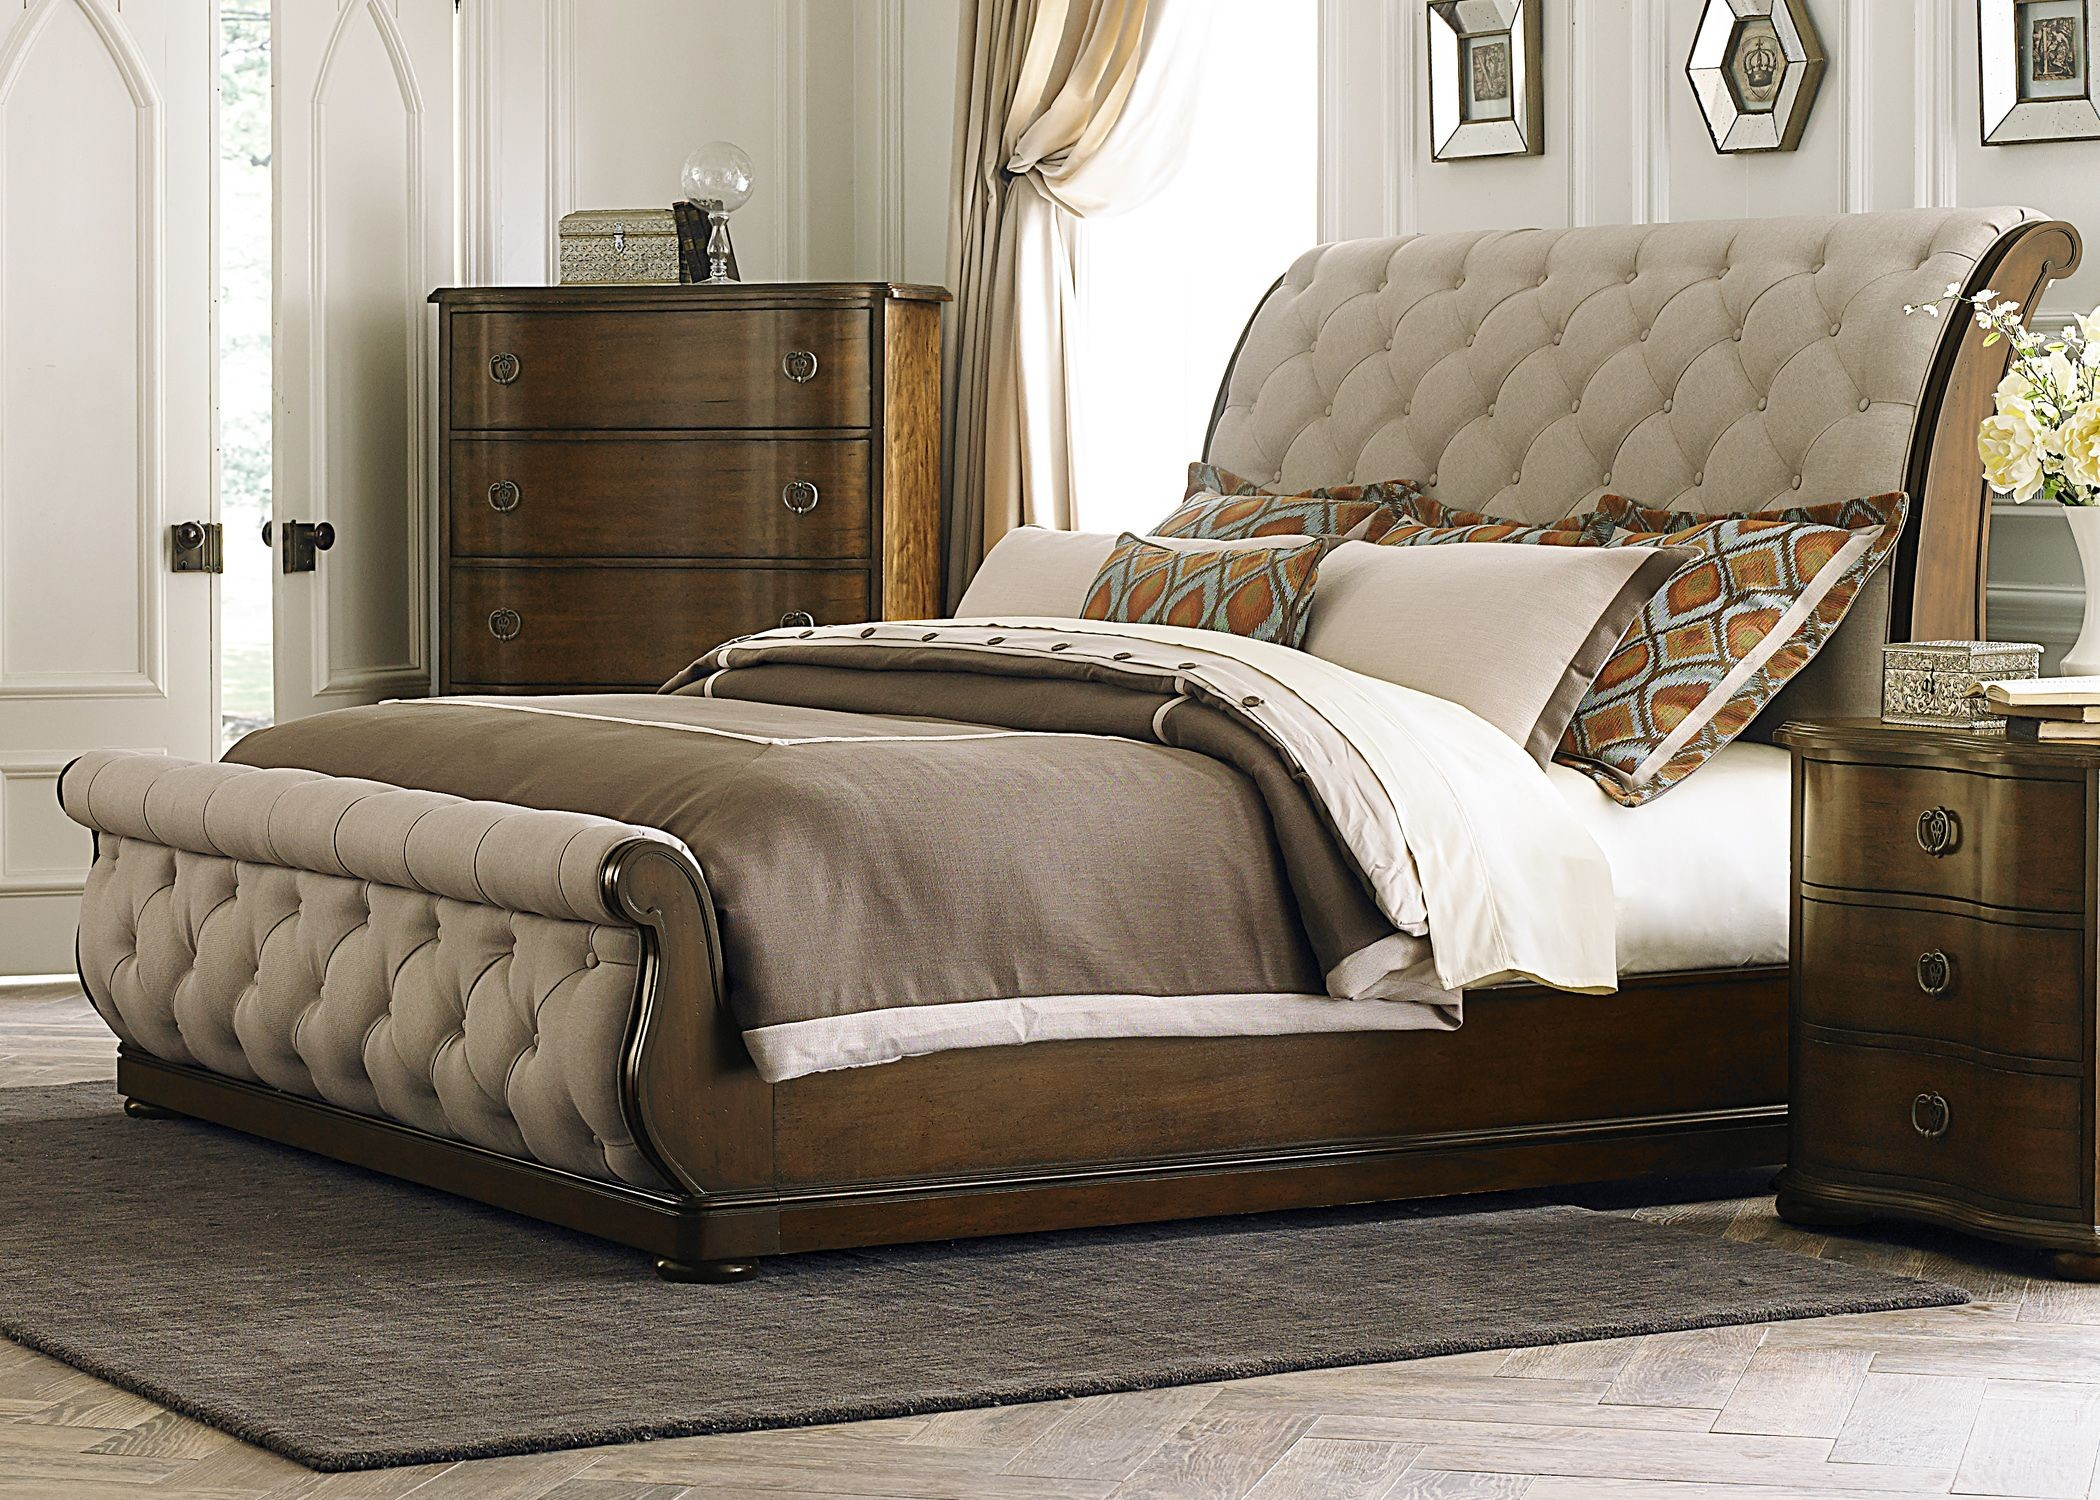 cotswold upholstered sleigh bedroom set from liberty (545-br-qsl